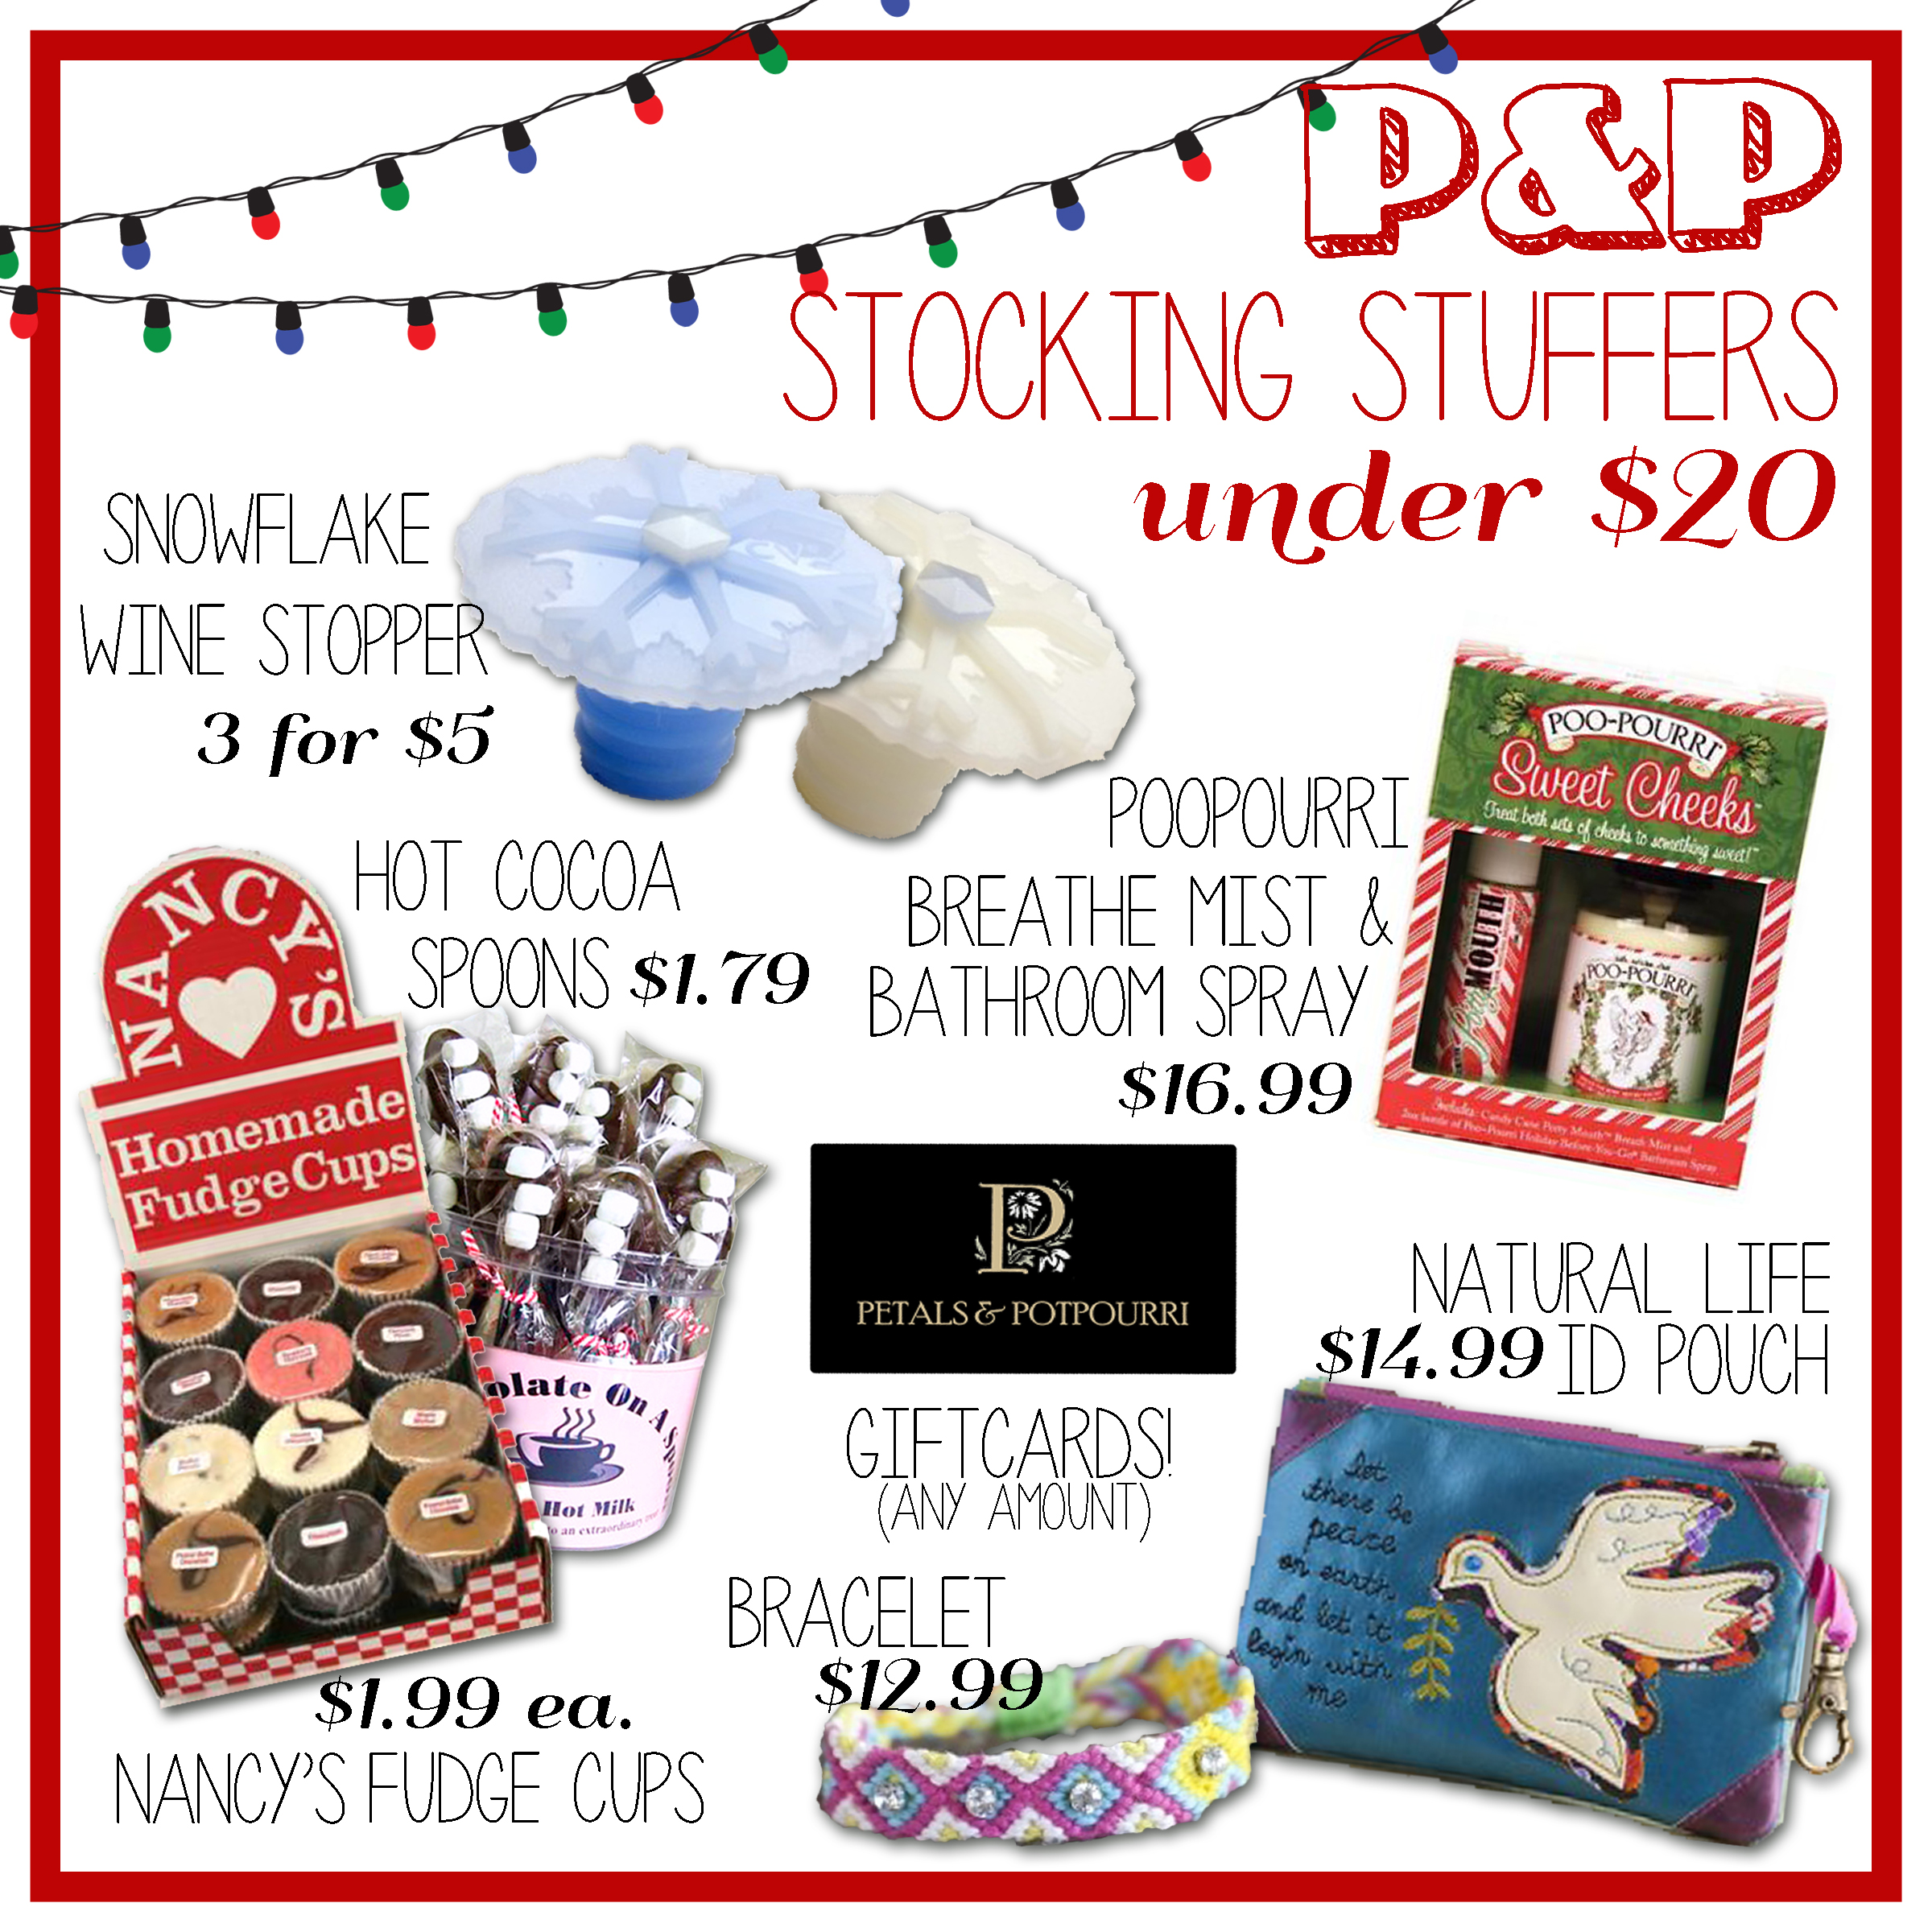 Petalsblogdotcom a topnotch site for Great stocking stuffers for adults